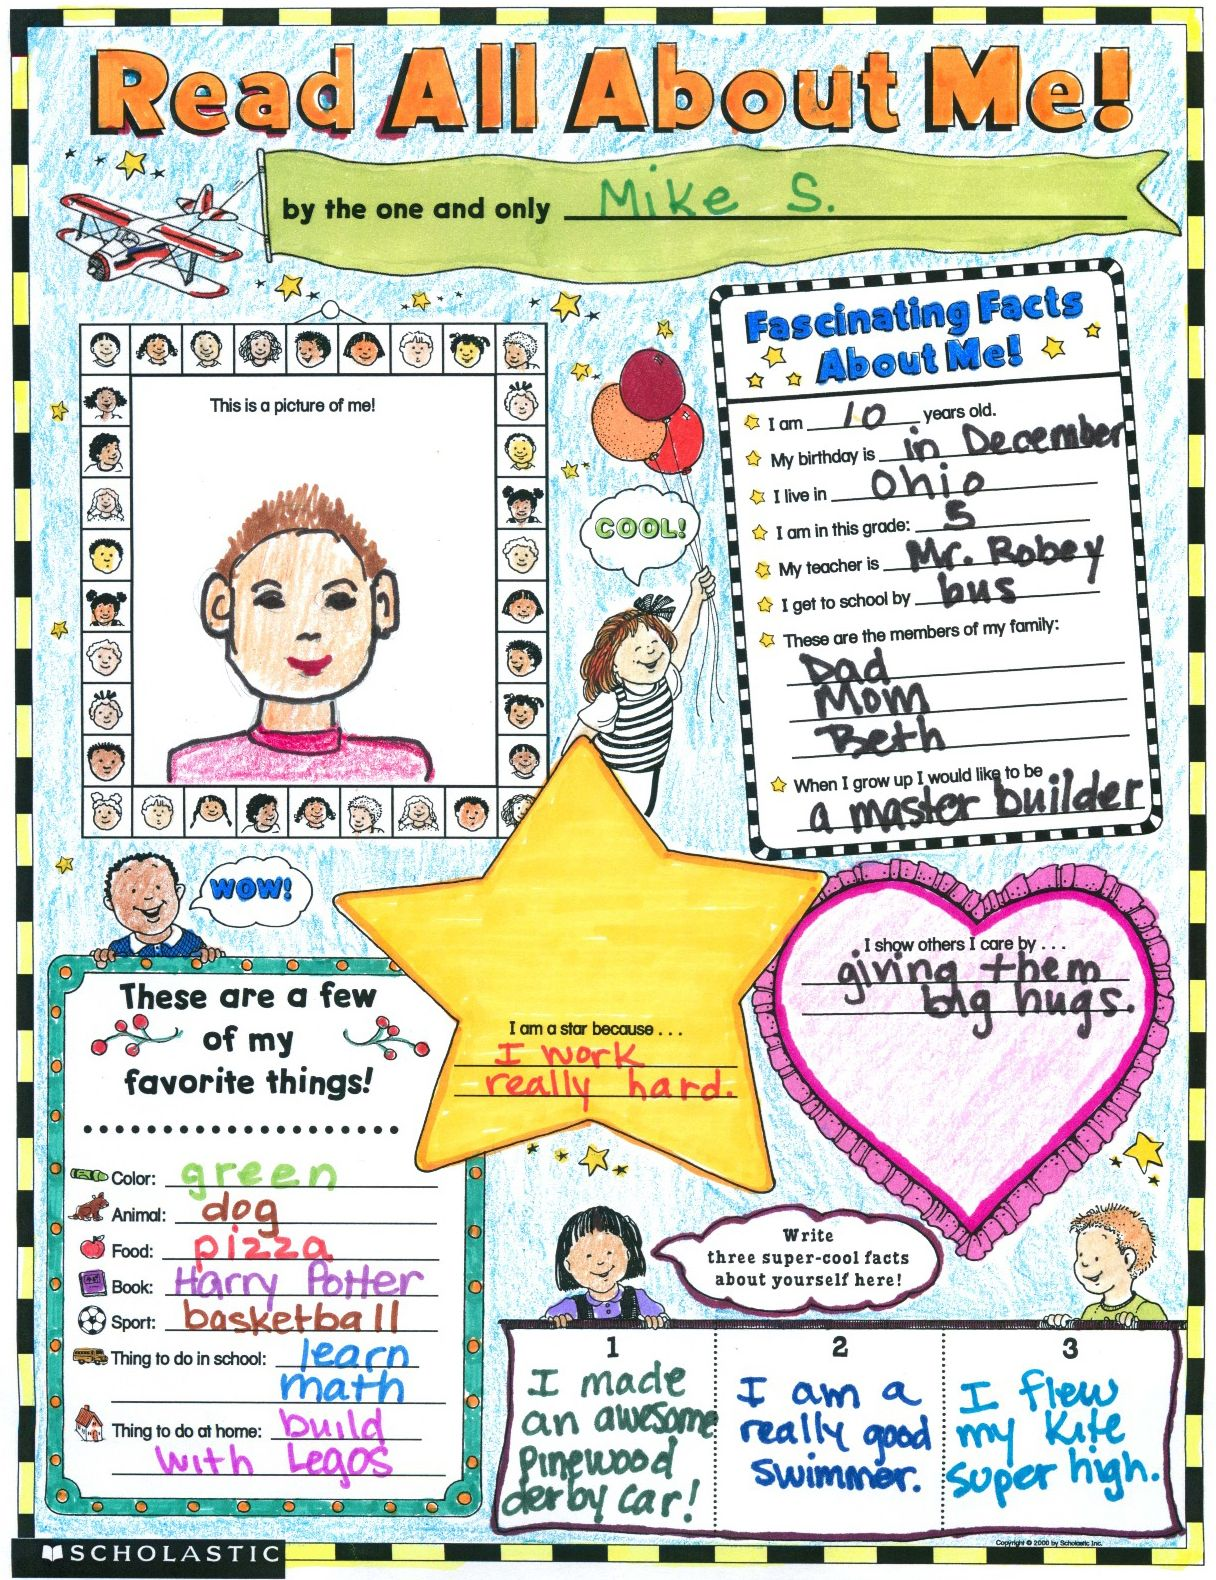 medium resolution of Read all about me poster: classroom worksheet.  #AllAboutMeActivities#AllAboutMePoster #Moti…   All about me poster